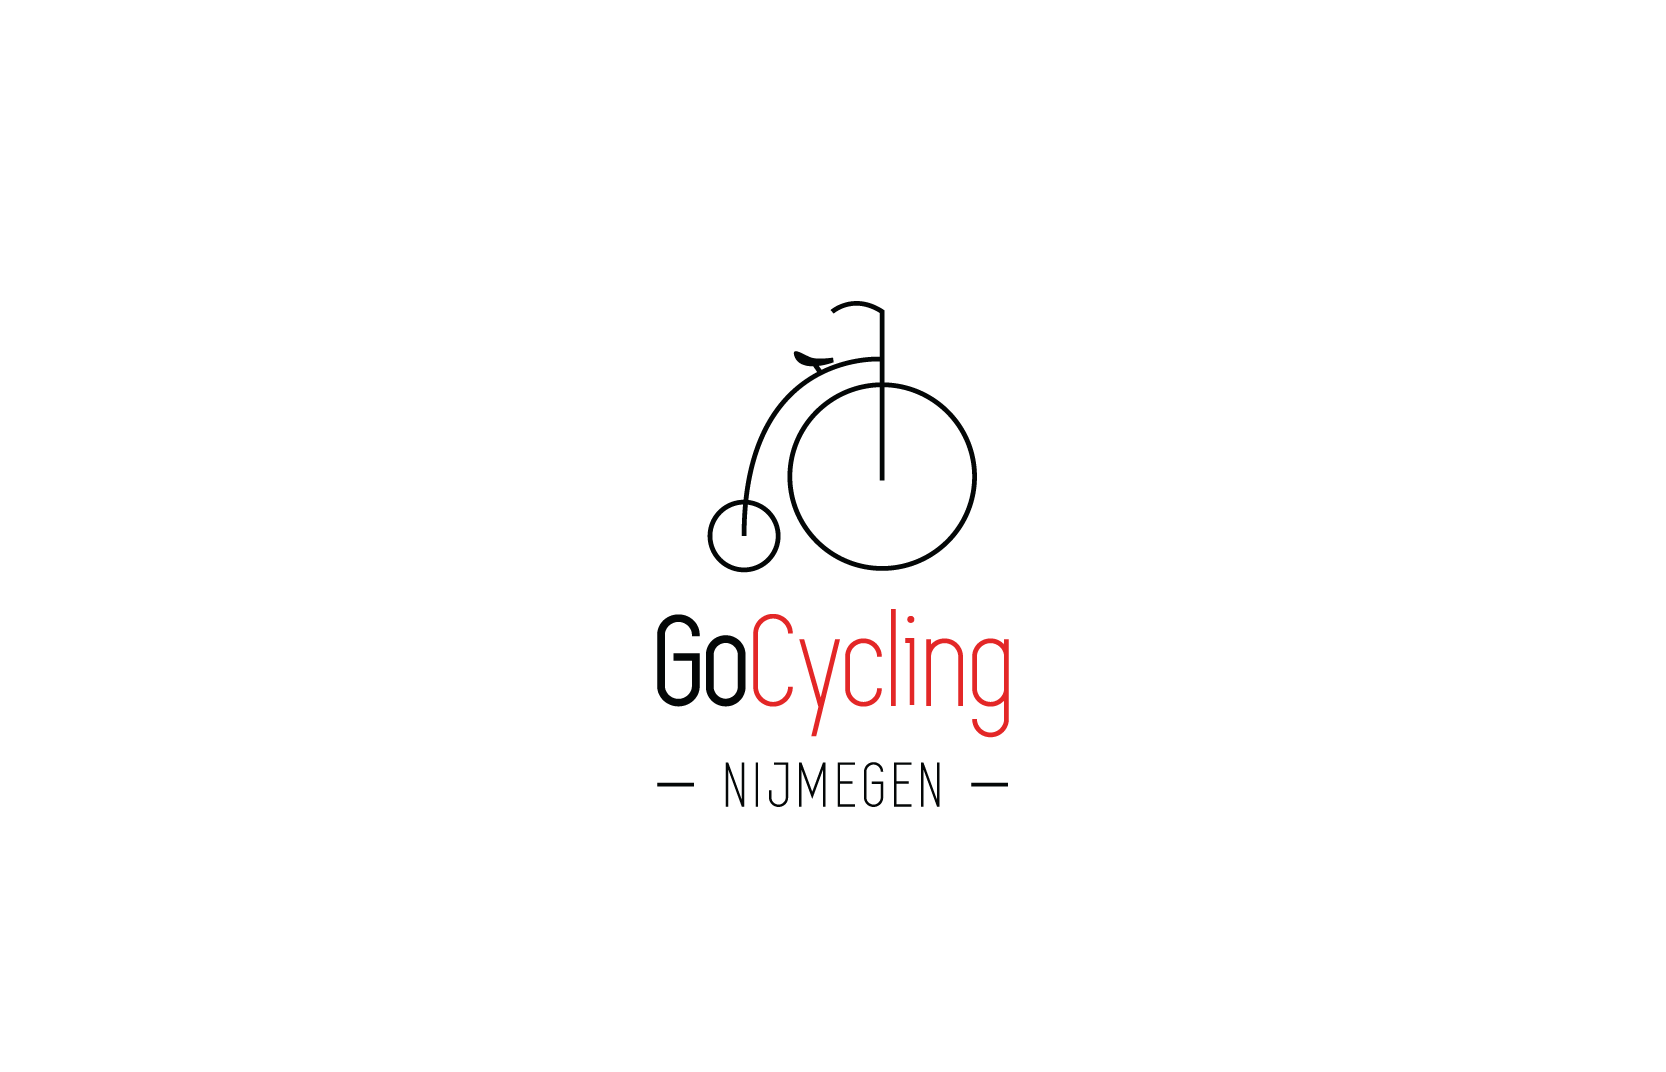 logo_gocycling_logo2